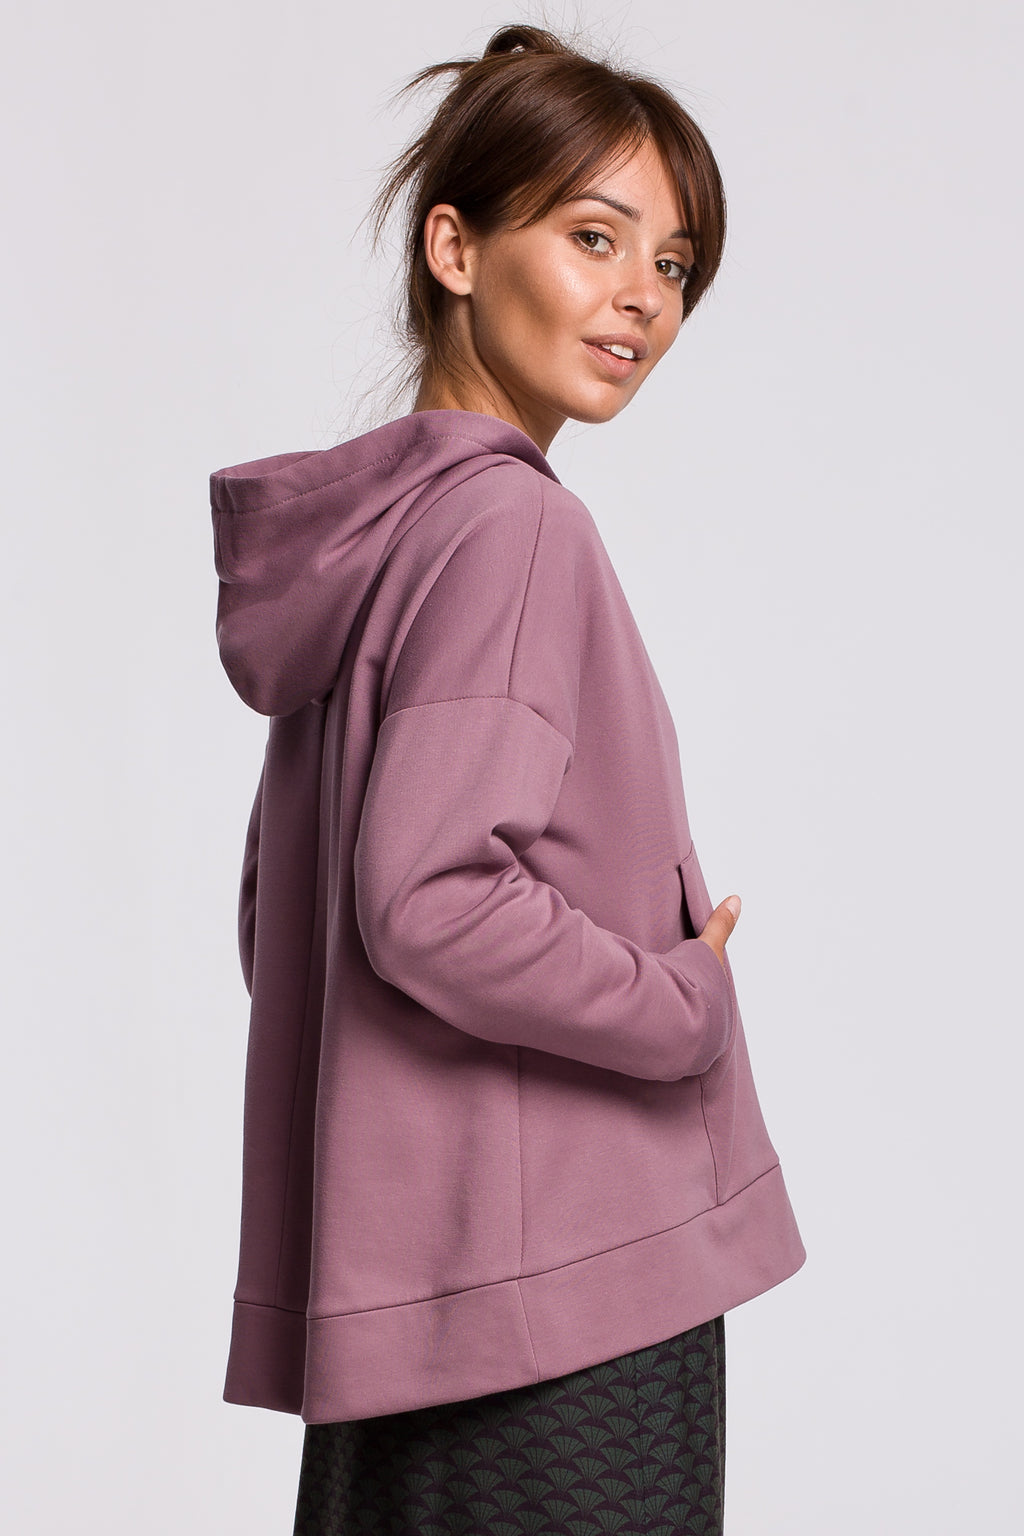 Lilac Hooded Sweatshirt With A Zip Neckline And Kangaroo Pocket - So Chic Boutique